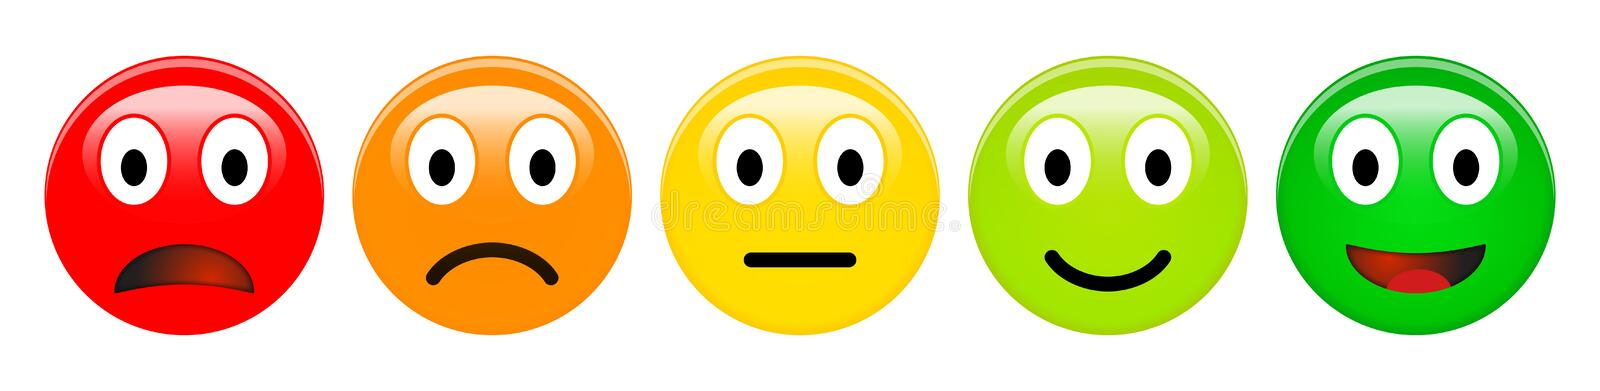 Feedback rating scale of red, orange, yellow and green emoticons, 3d Smiley icons in different colours. vector illustration